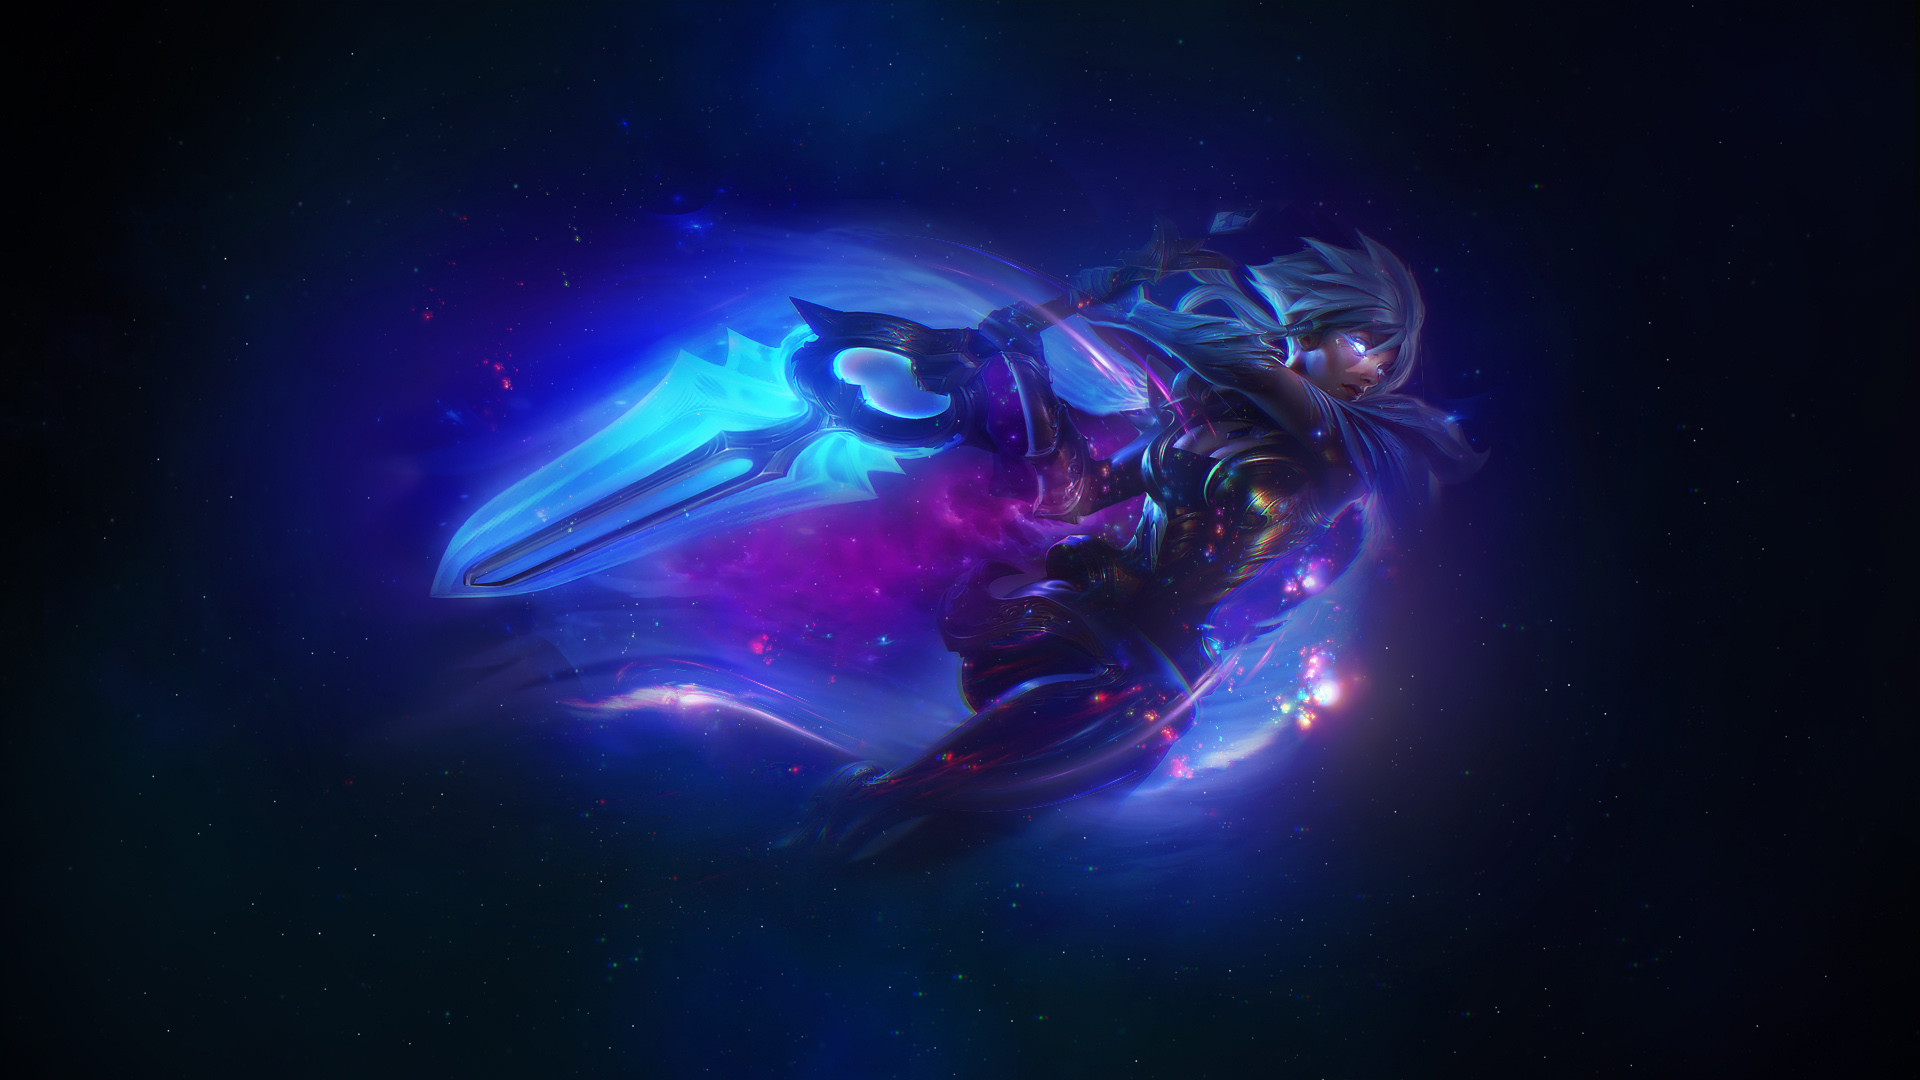 1920x1080 Dawnbringer Riven by syraelx HD Wallpaper Background Fan Art Artwork League  of Legends lol